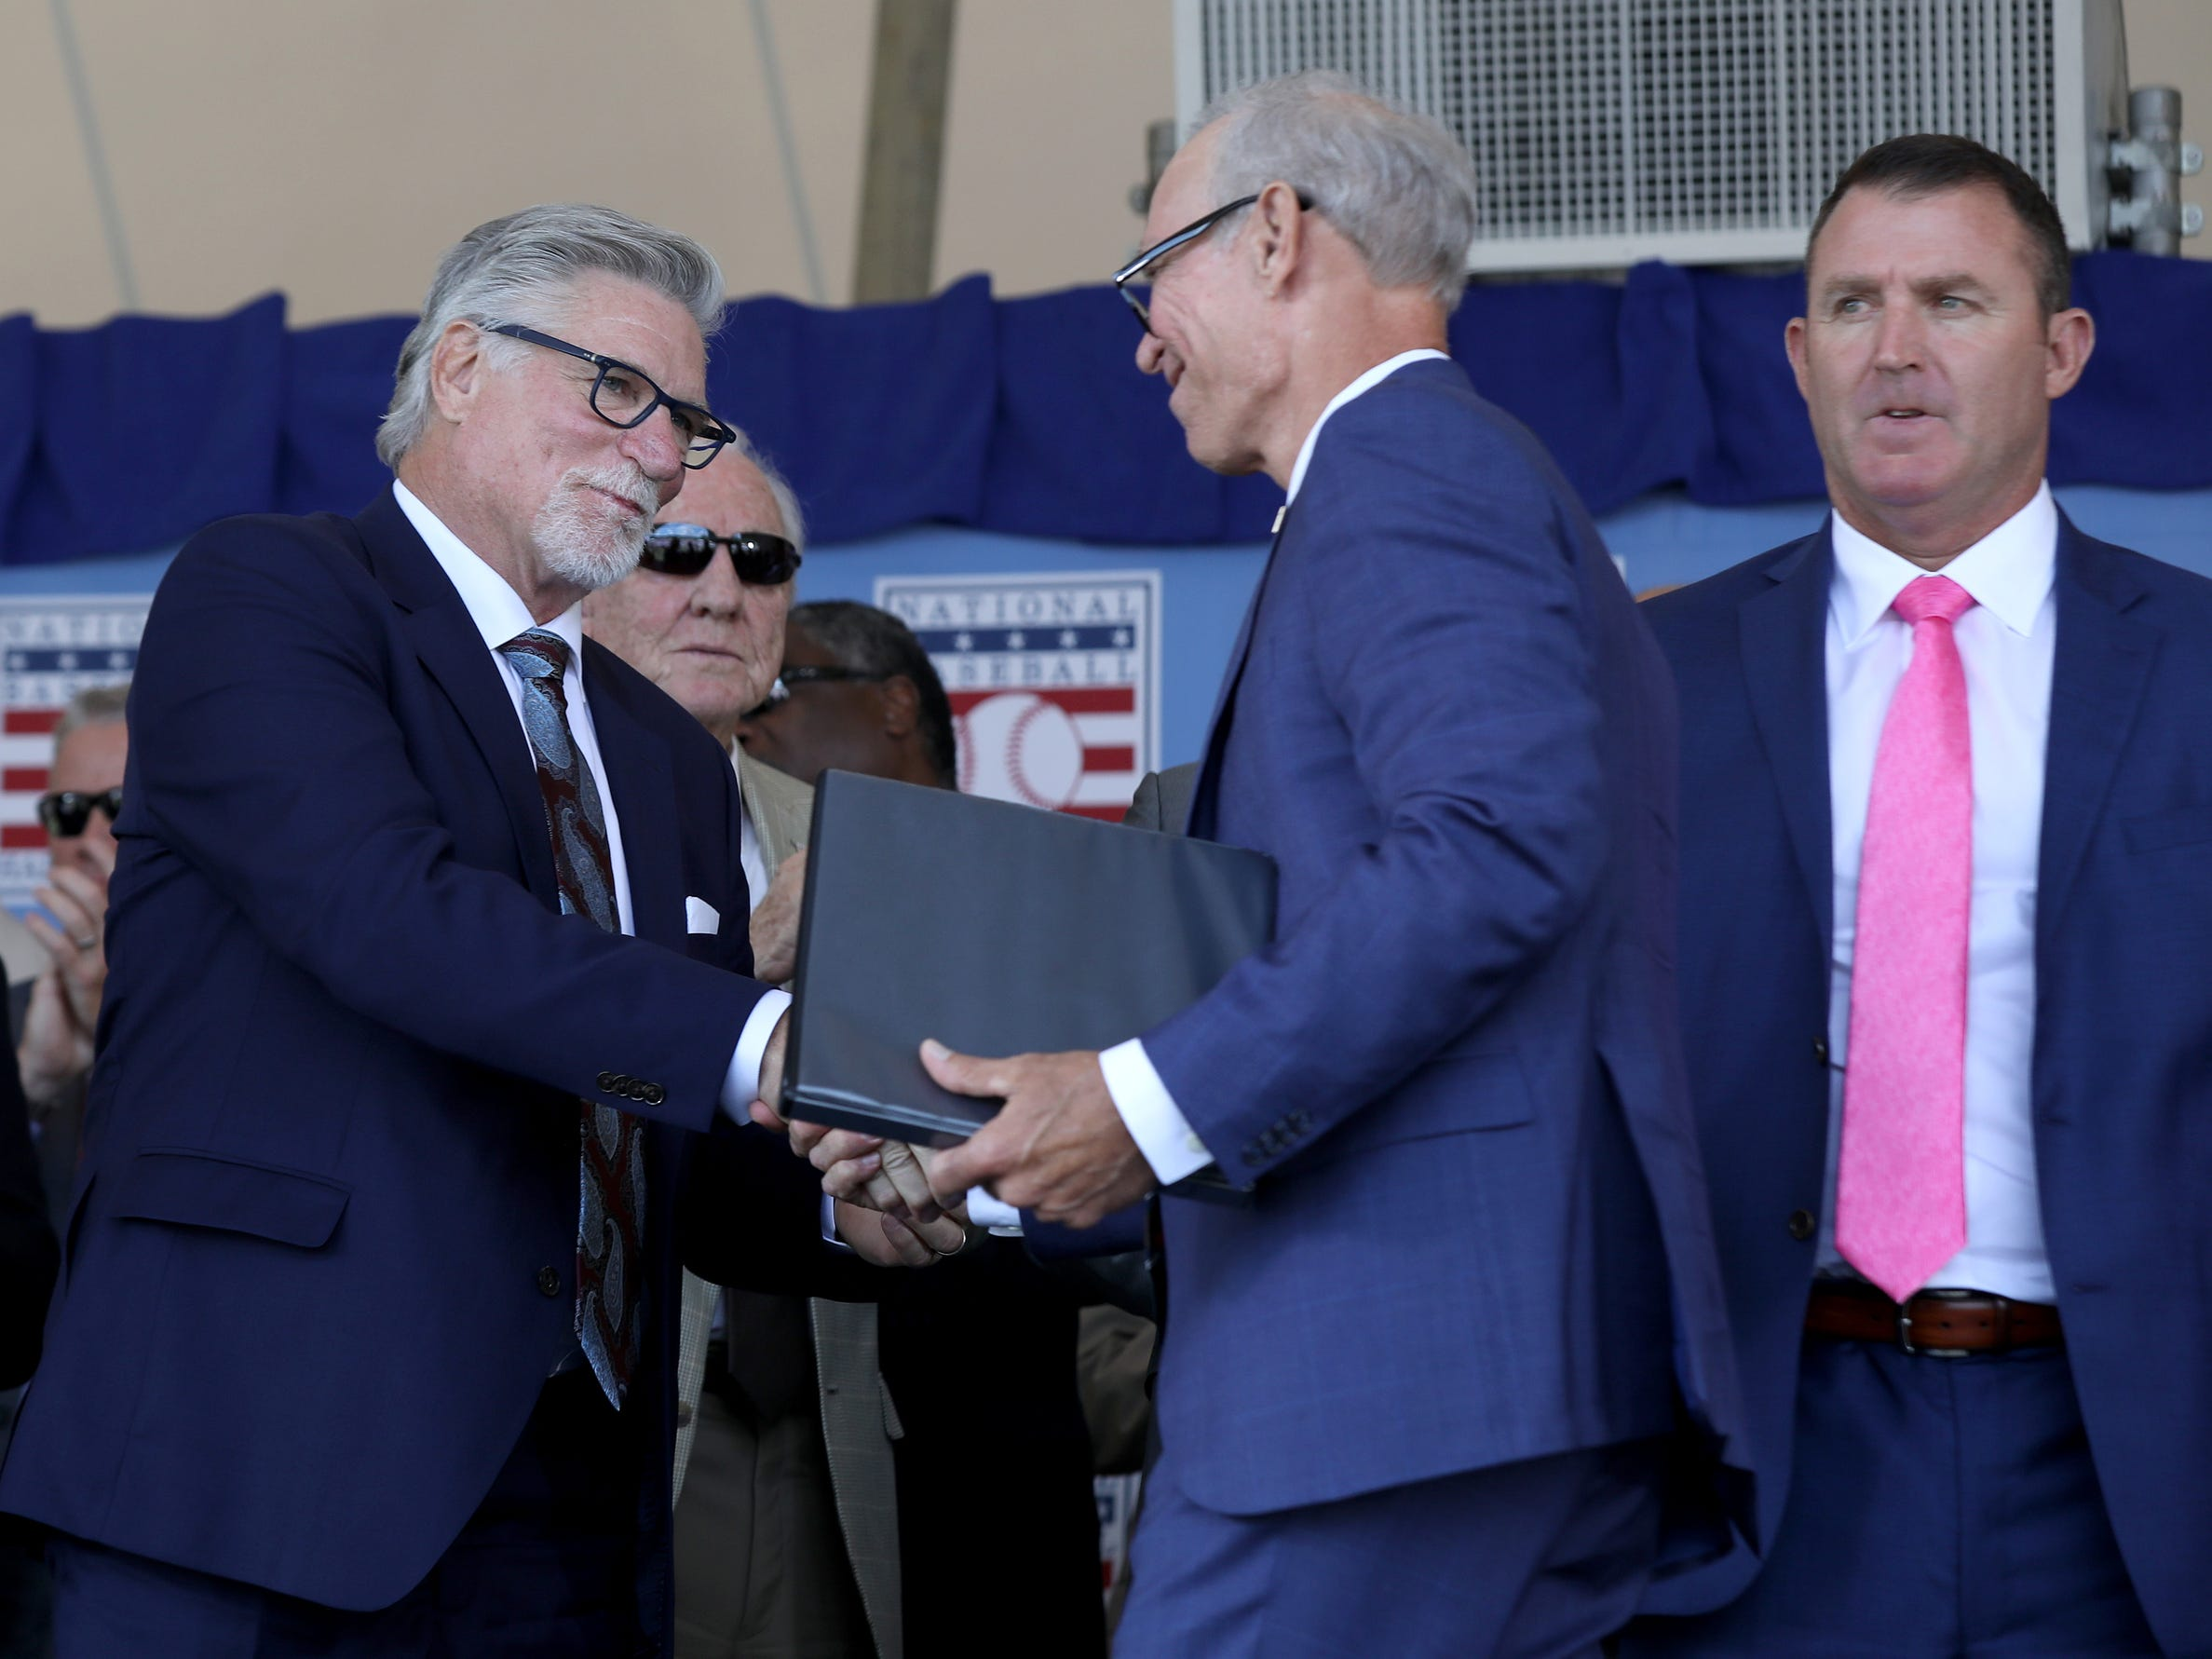 Detroit Tigers' Jack Morris, left, shakes hands with his former teammate Alan Trammell, after Trammell finished his National Baseball Hall of Fame induction speech at the Clark Sports Center in Cooperstown, N.Y. on Sunday, July 29, 2018.